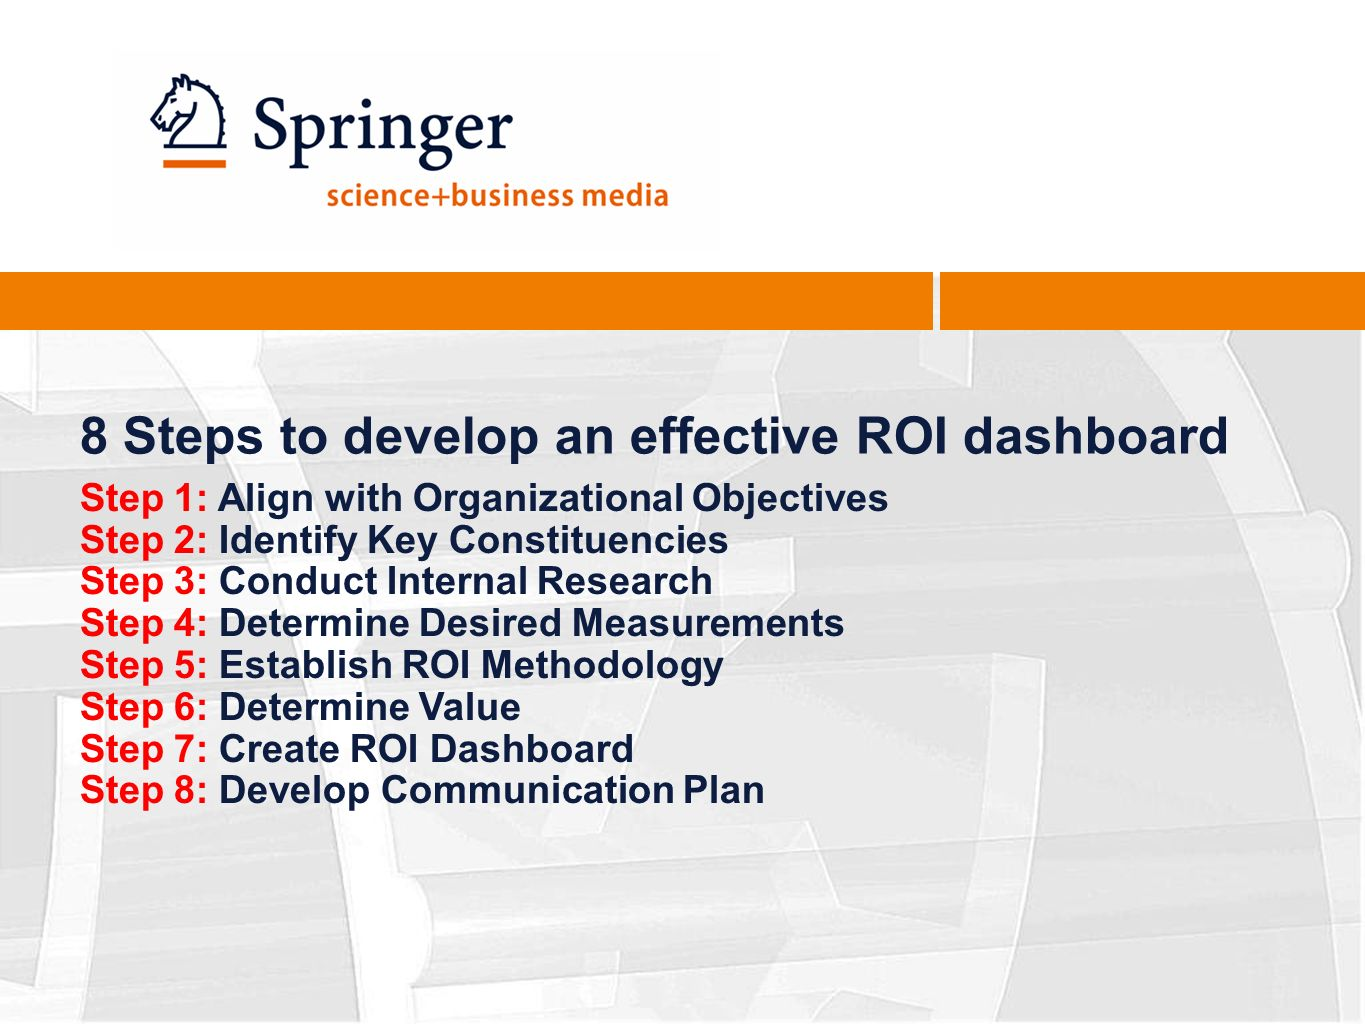 8 Steps to develop an effective ROI dashboard Step 1: Align with Organizational Objectives Step 2: Identify Key Constituencies Step 3: Conduct Internal Research Step 4: Determine Desired Measurements Step 5: Establish ROI Methodology Step 6: Determine Value Step 7: Create ROI Dashboard Step 8: Develop Communication Plan